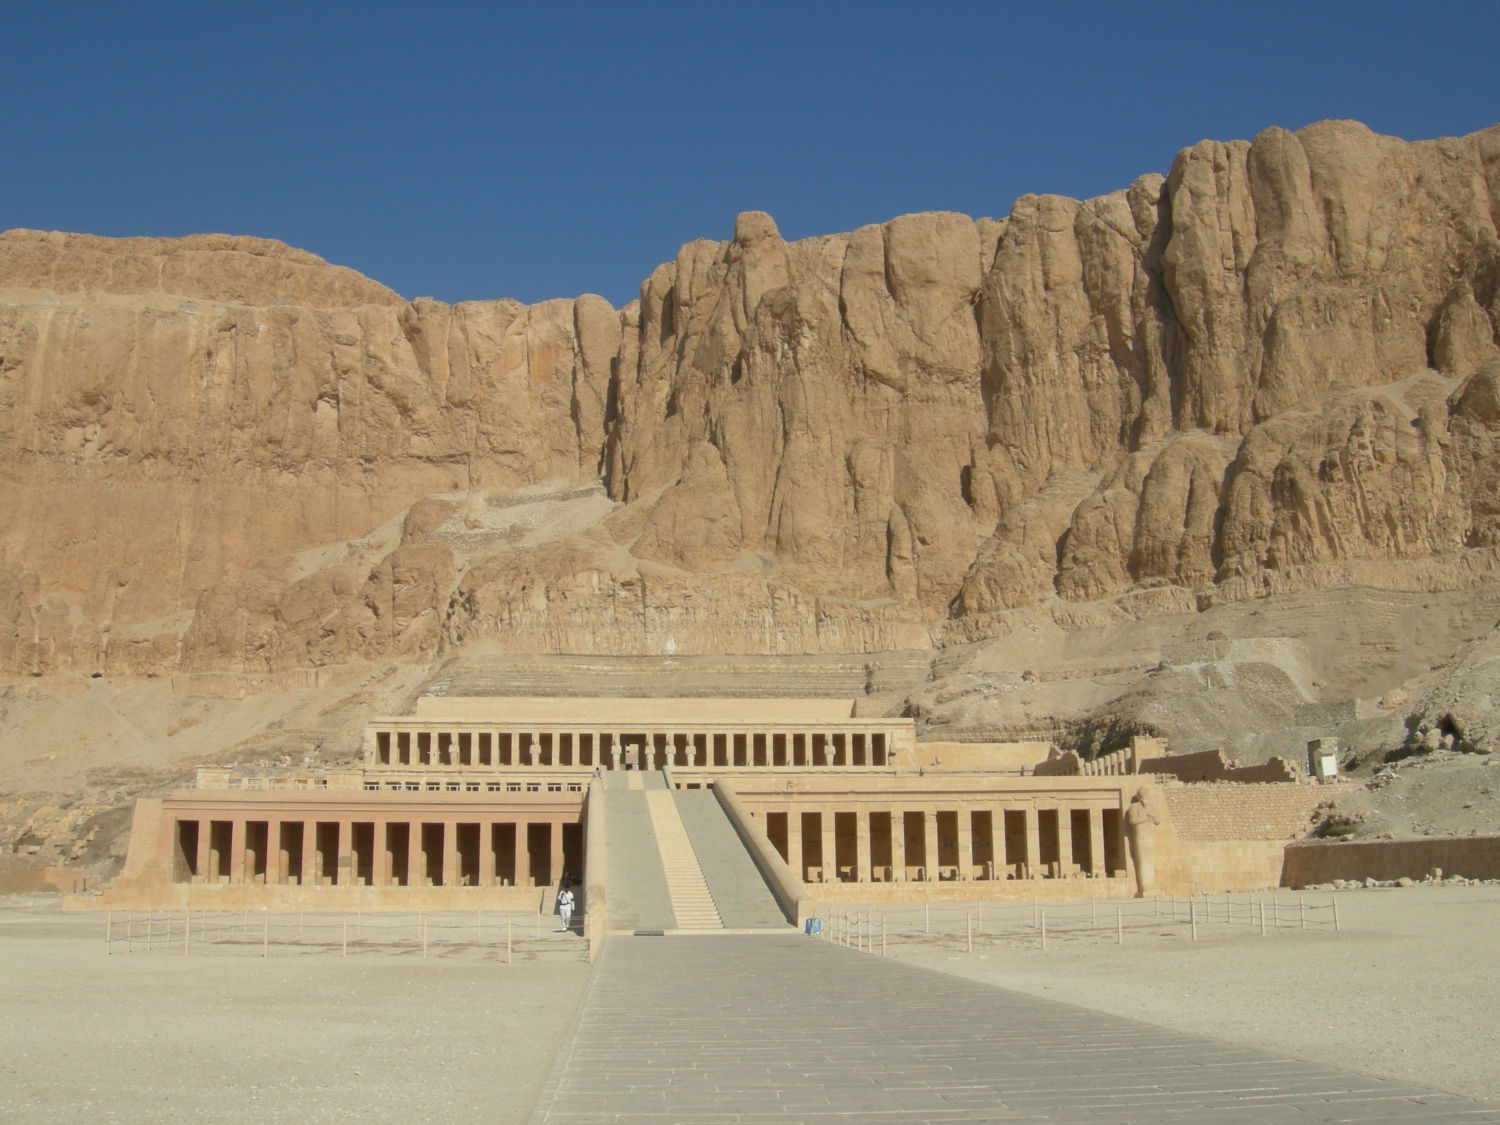 Hatshepsut Palace - Valley of the Kings / Valley of the Queens